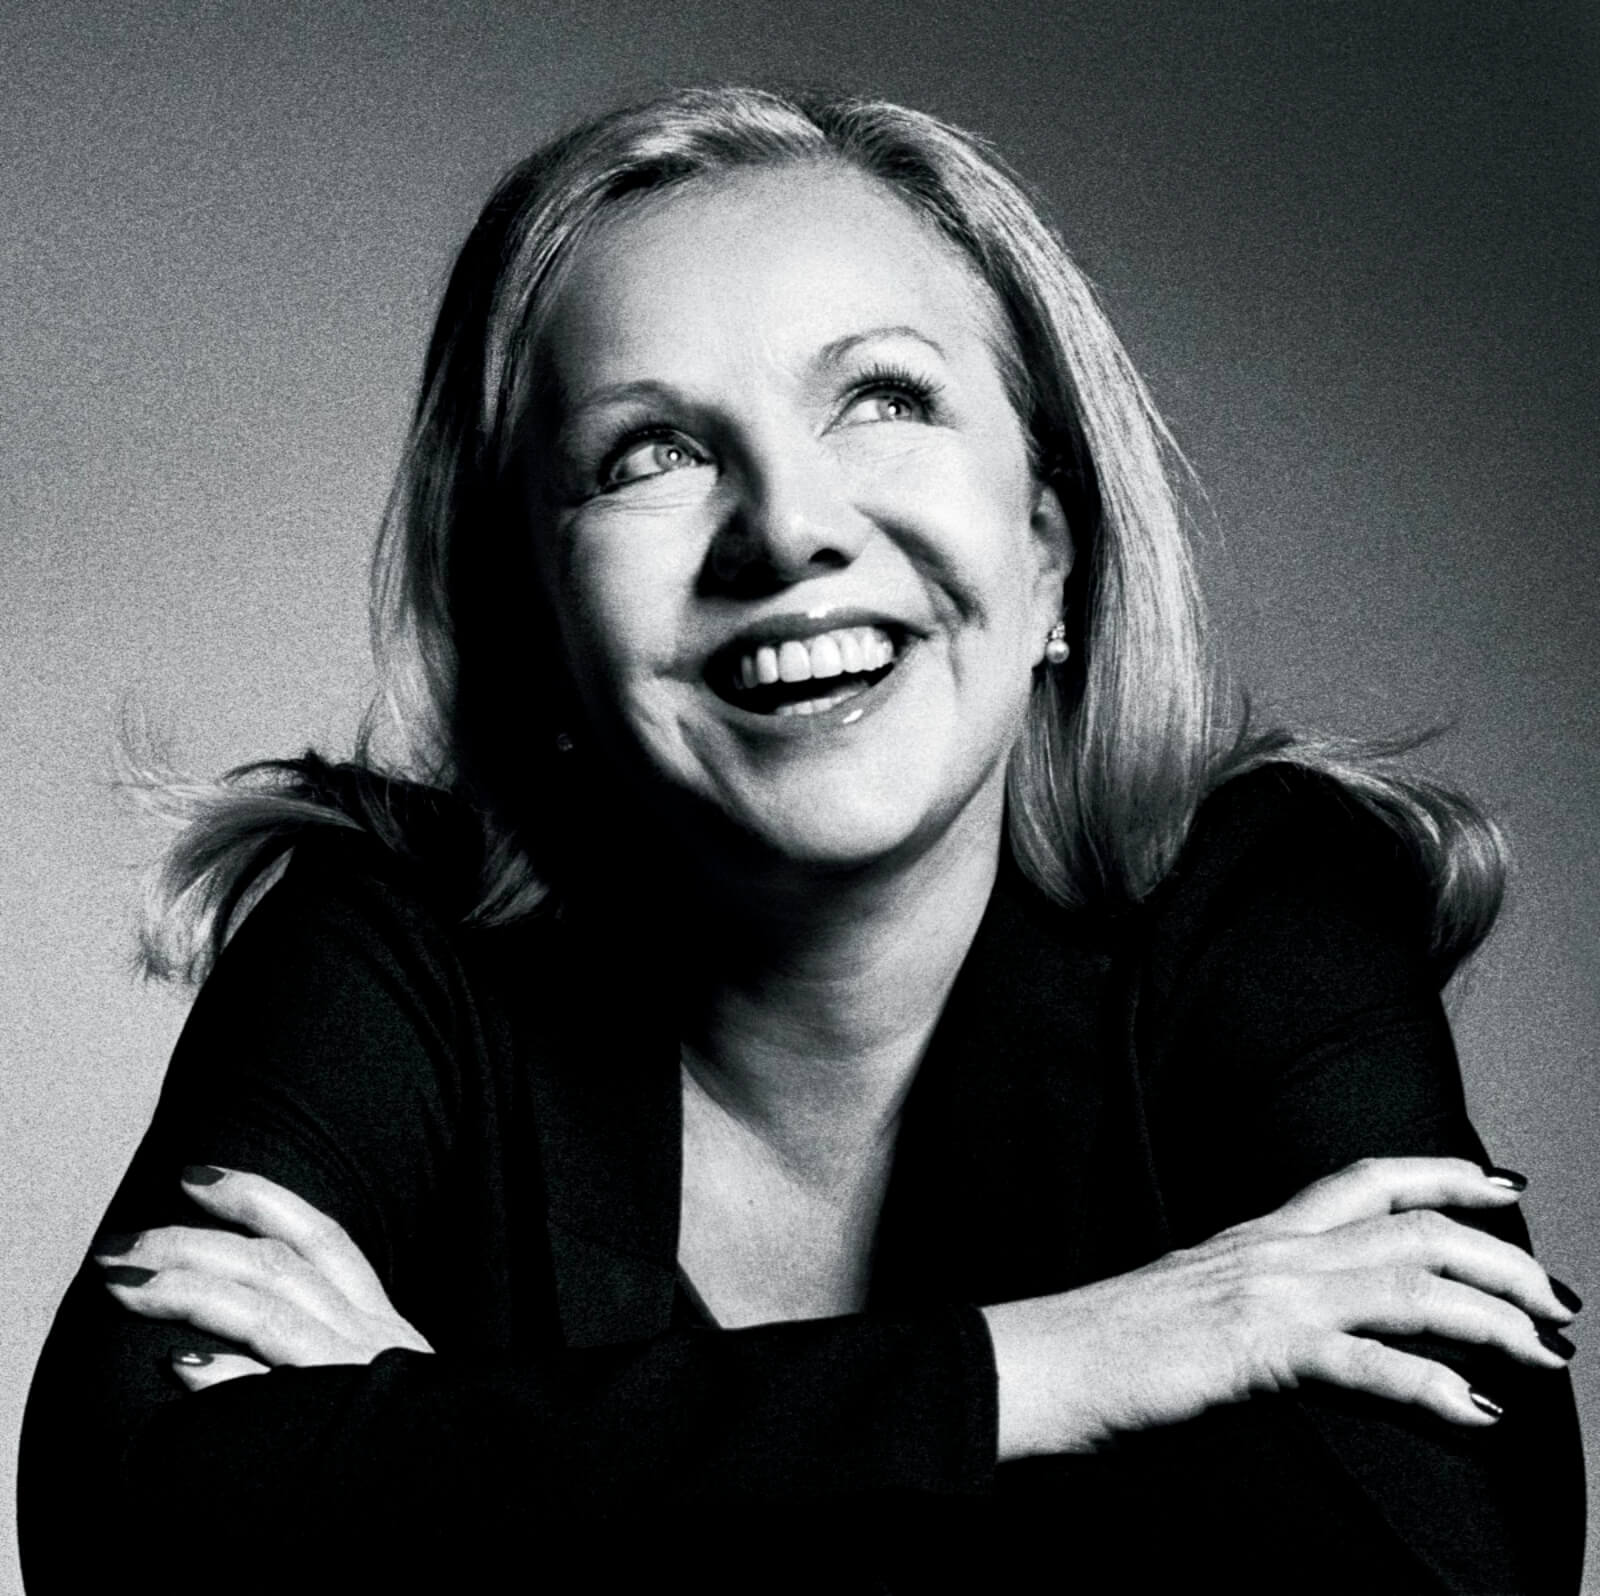 Susan Stroman in black and white looking up joyfully the right left.